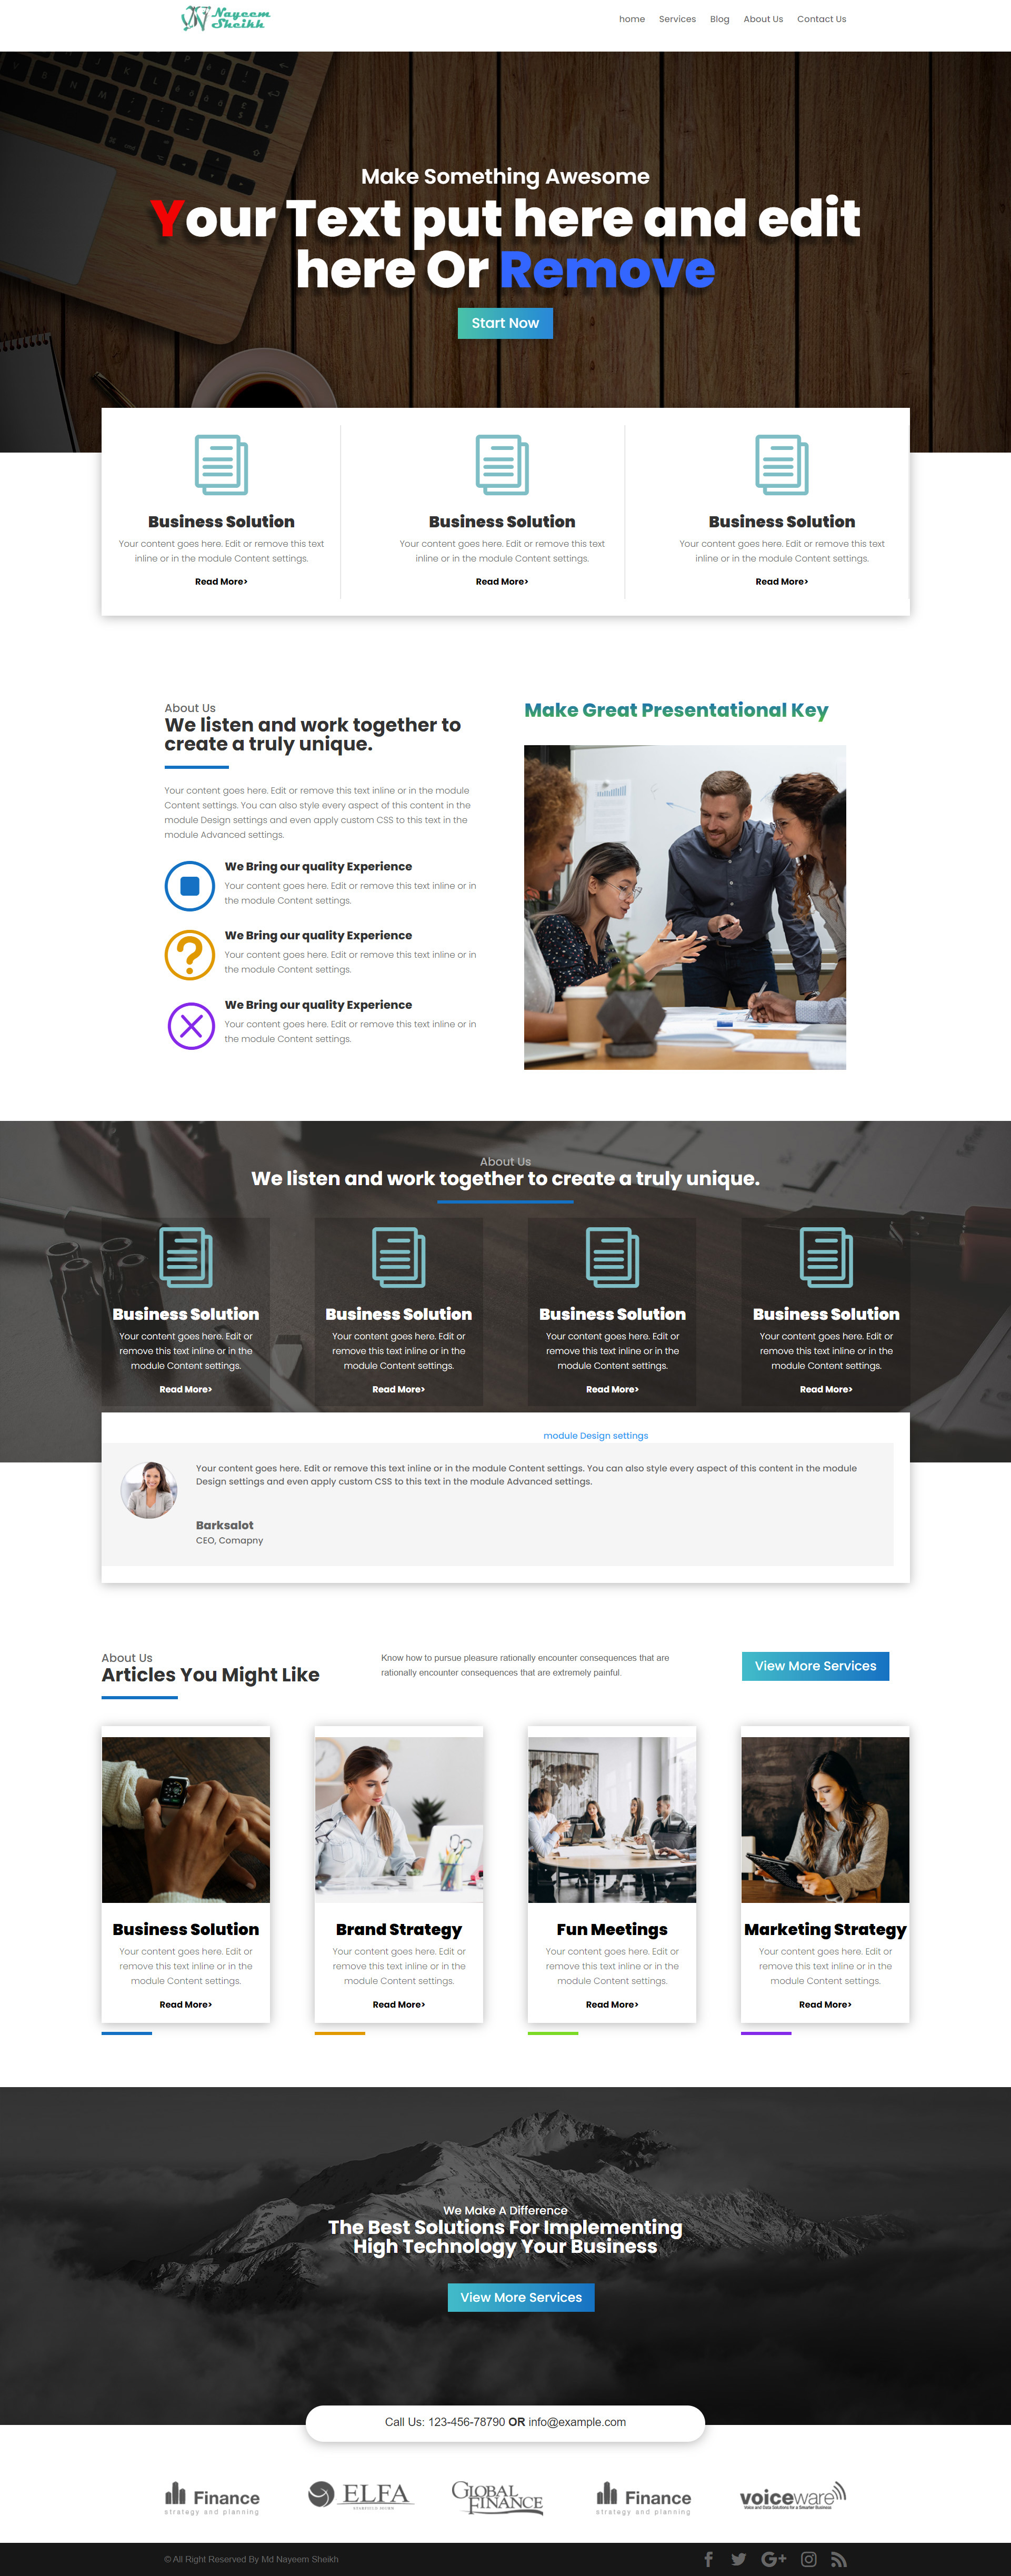 Design Professional WordPress Website for your Business